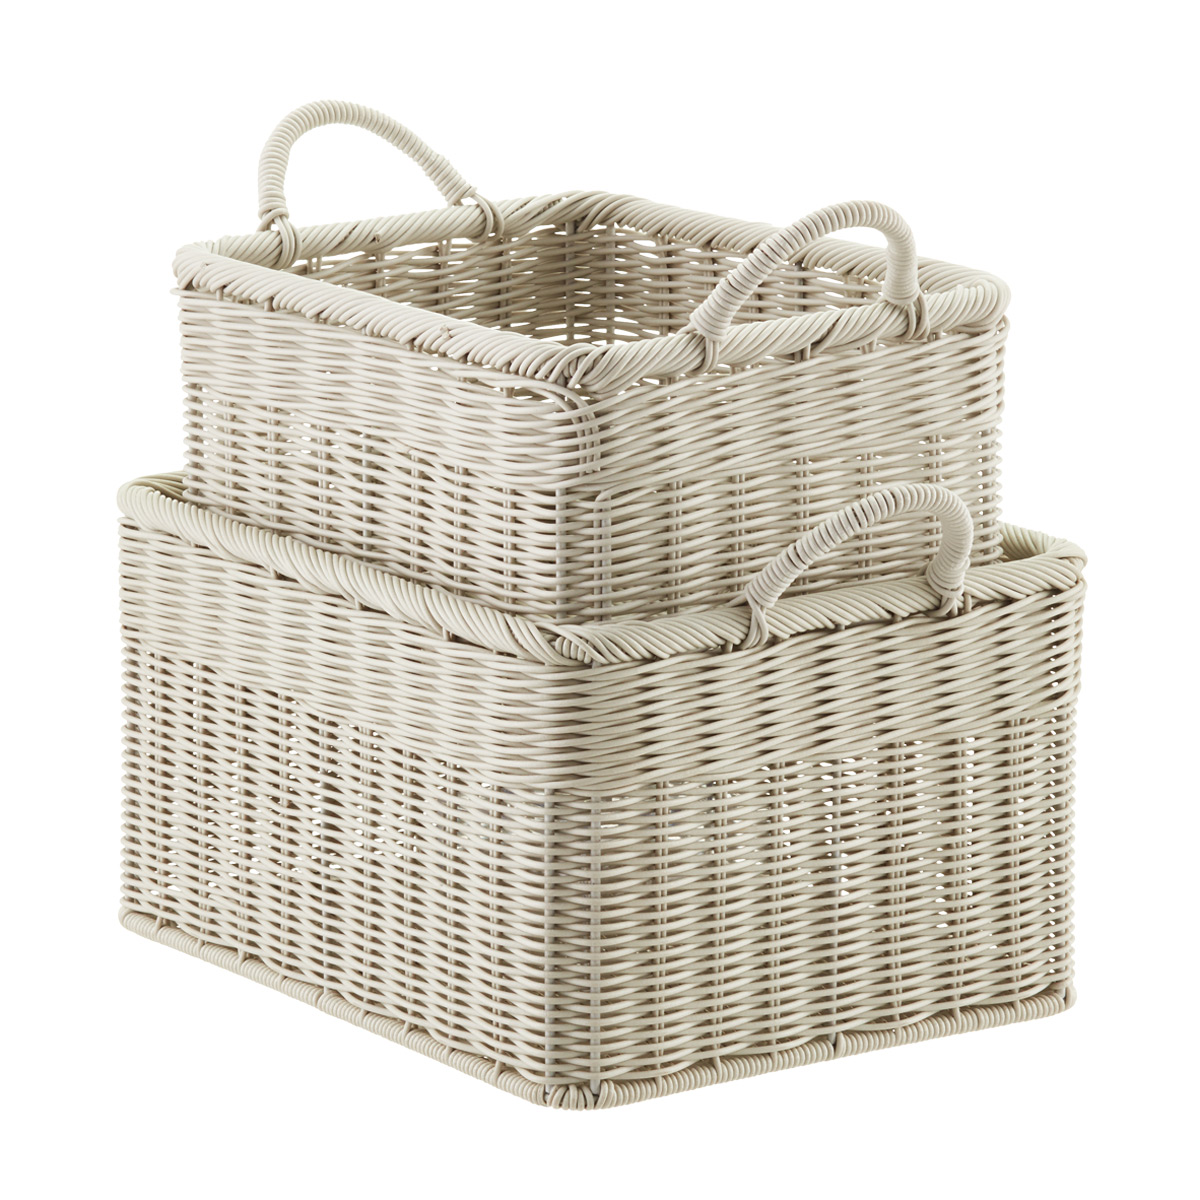 Stone Woven Plastic Storage Bins with Handles  sc 1 st  The Container Store & Baskets: Wicker Baskets Decorative Baskets u0026 Storage Bins | The ...